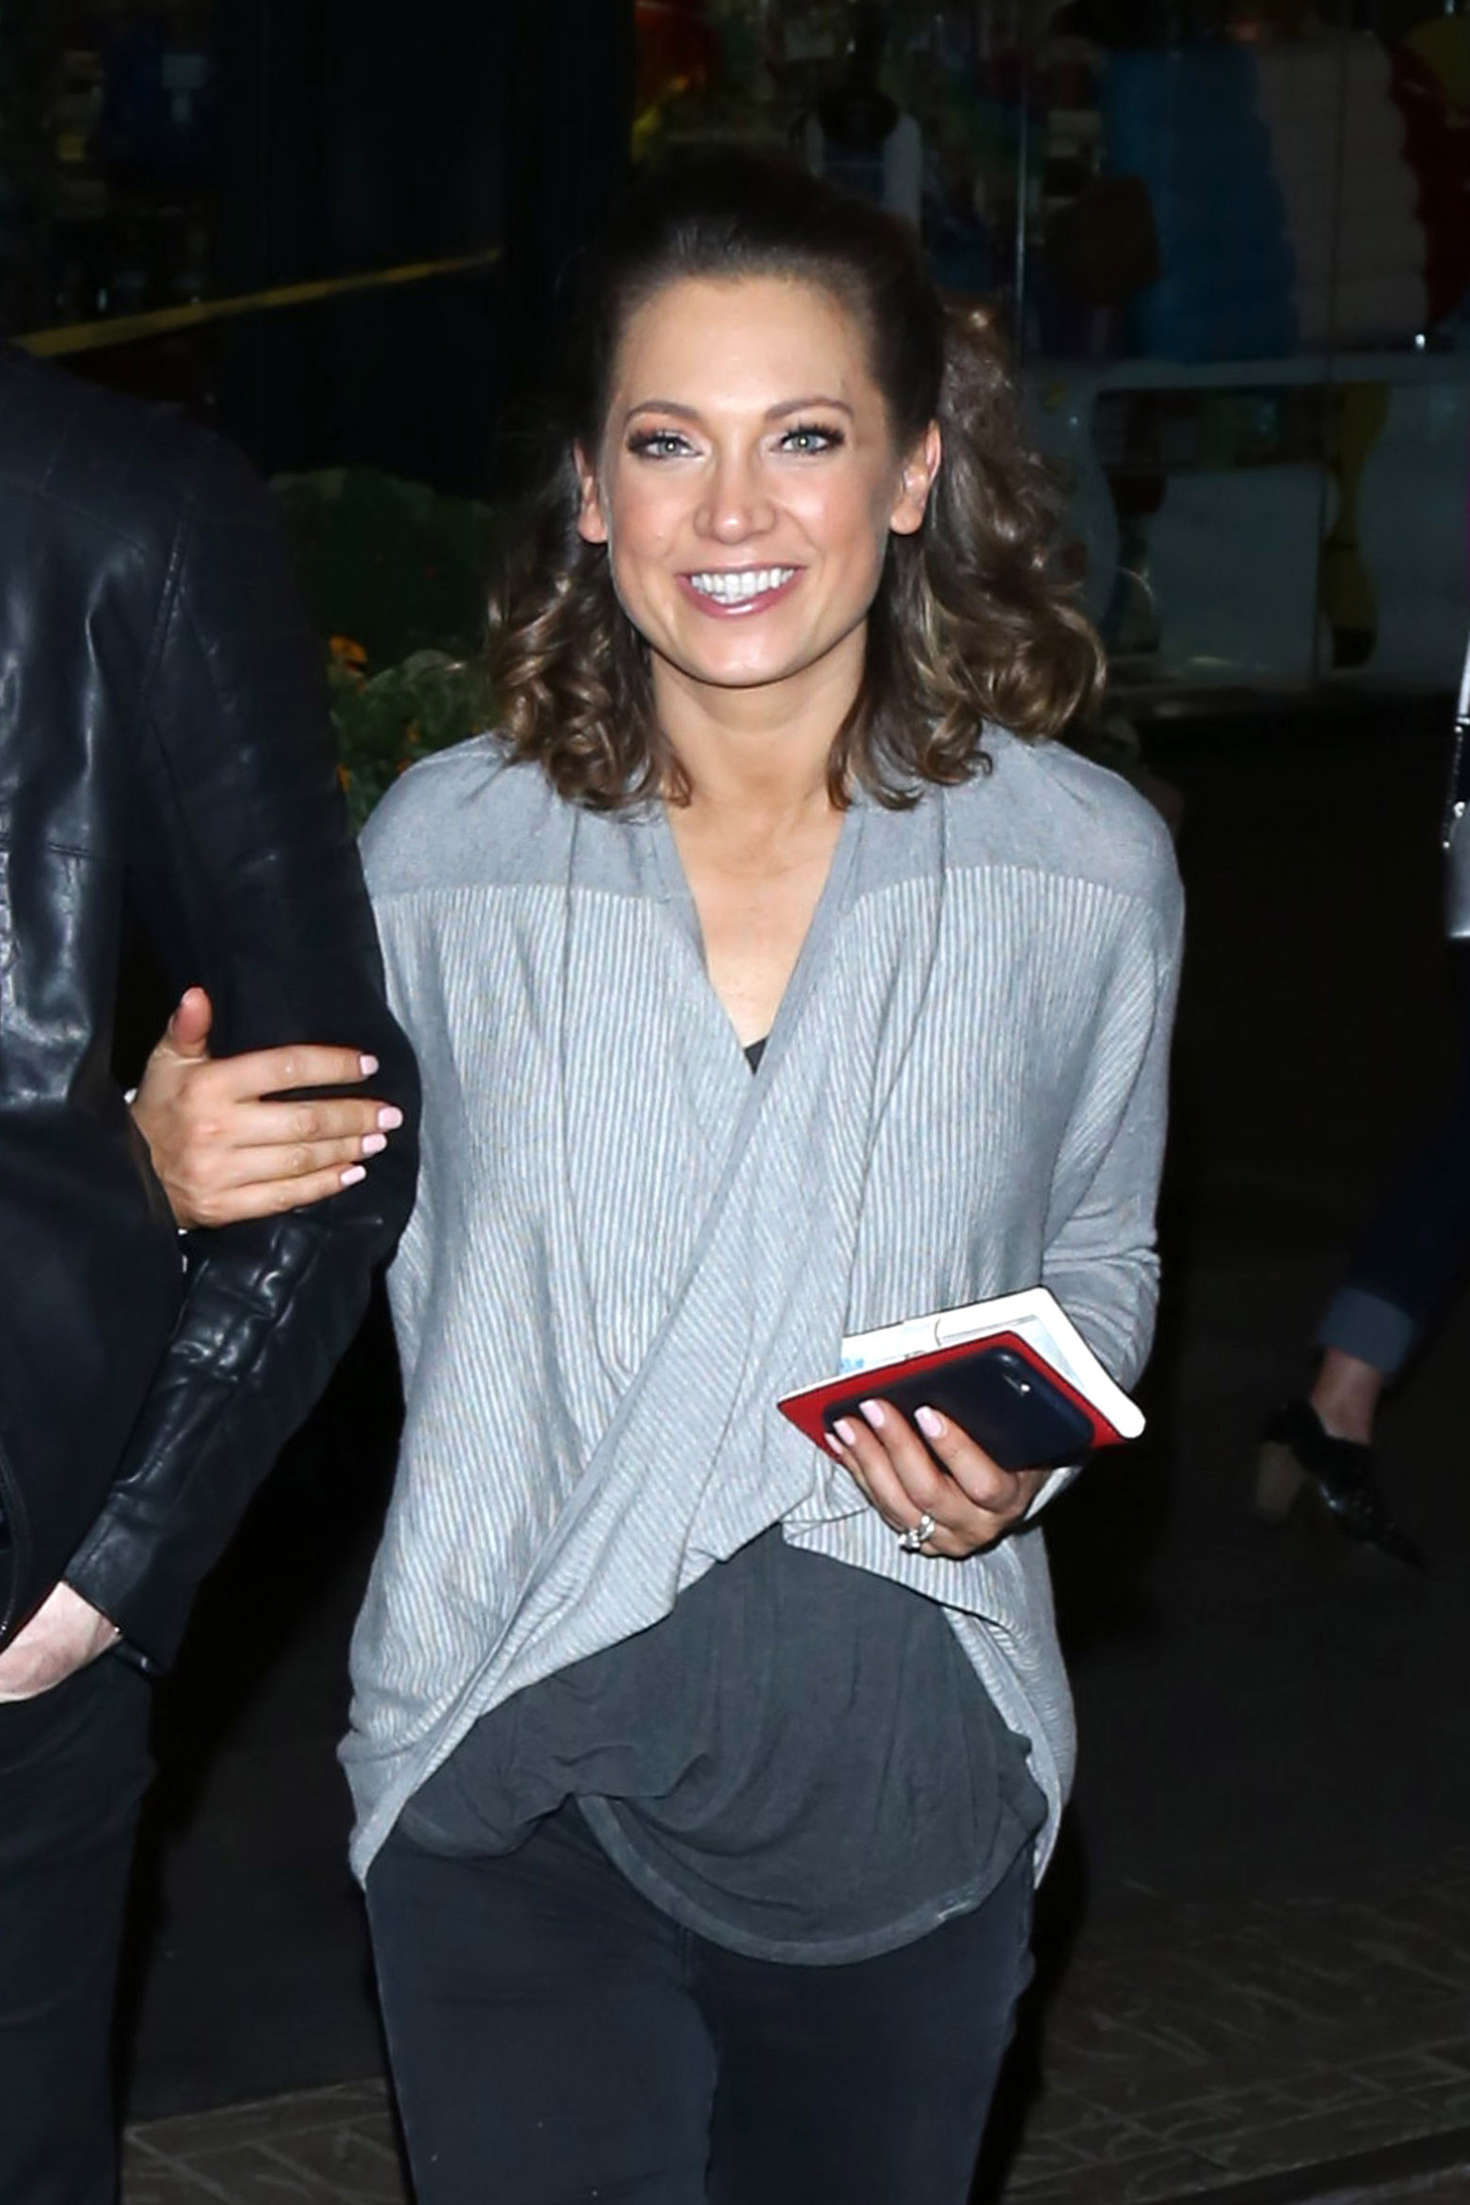 Ginger Zee Heads to Mixology101 after DWTS Competition in Los Angeles